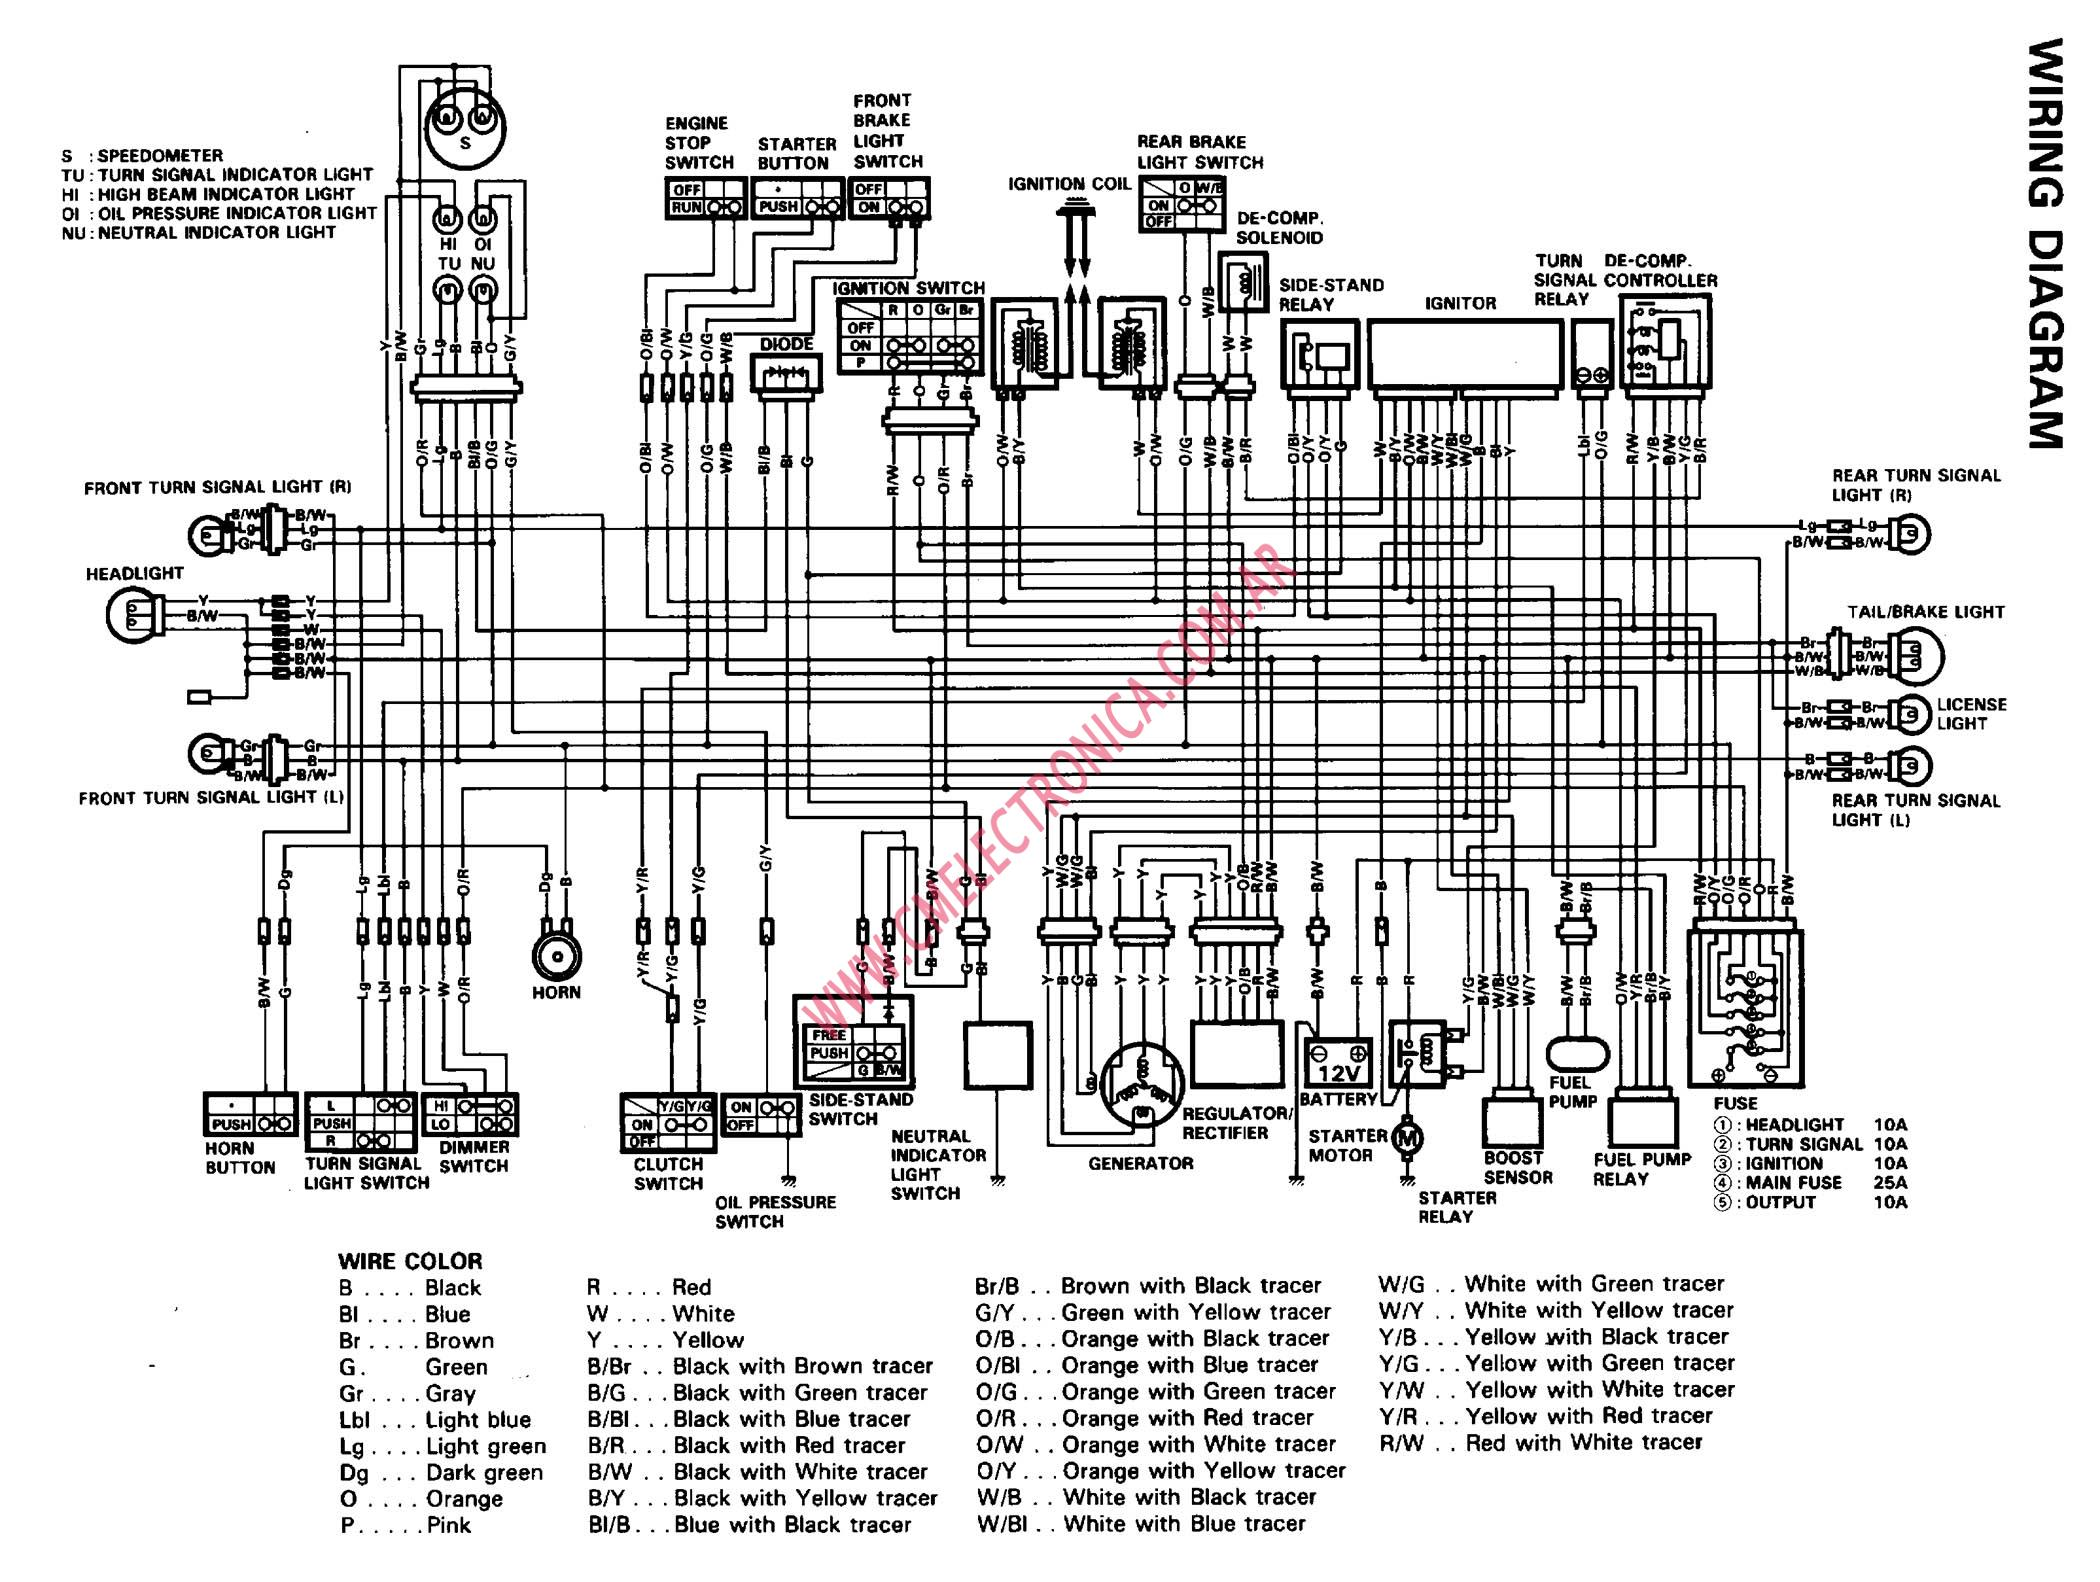 suzuki vs1400 diagrama suzuki vs1400 suzuki intruder 1400 wiring diagram at gsmportal.co